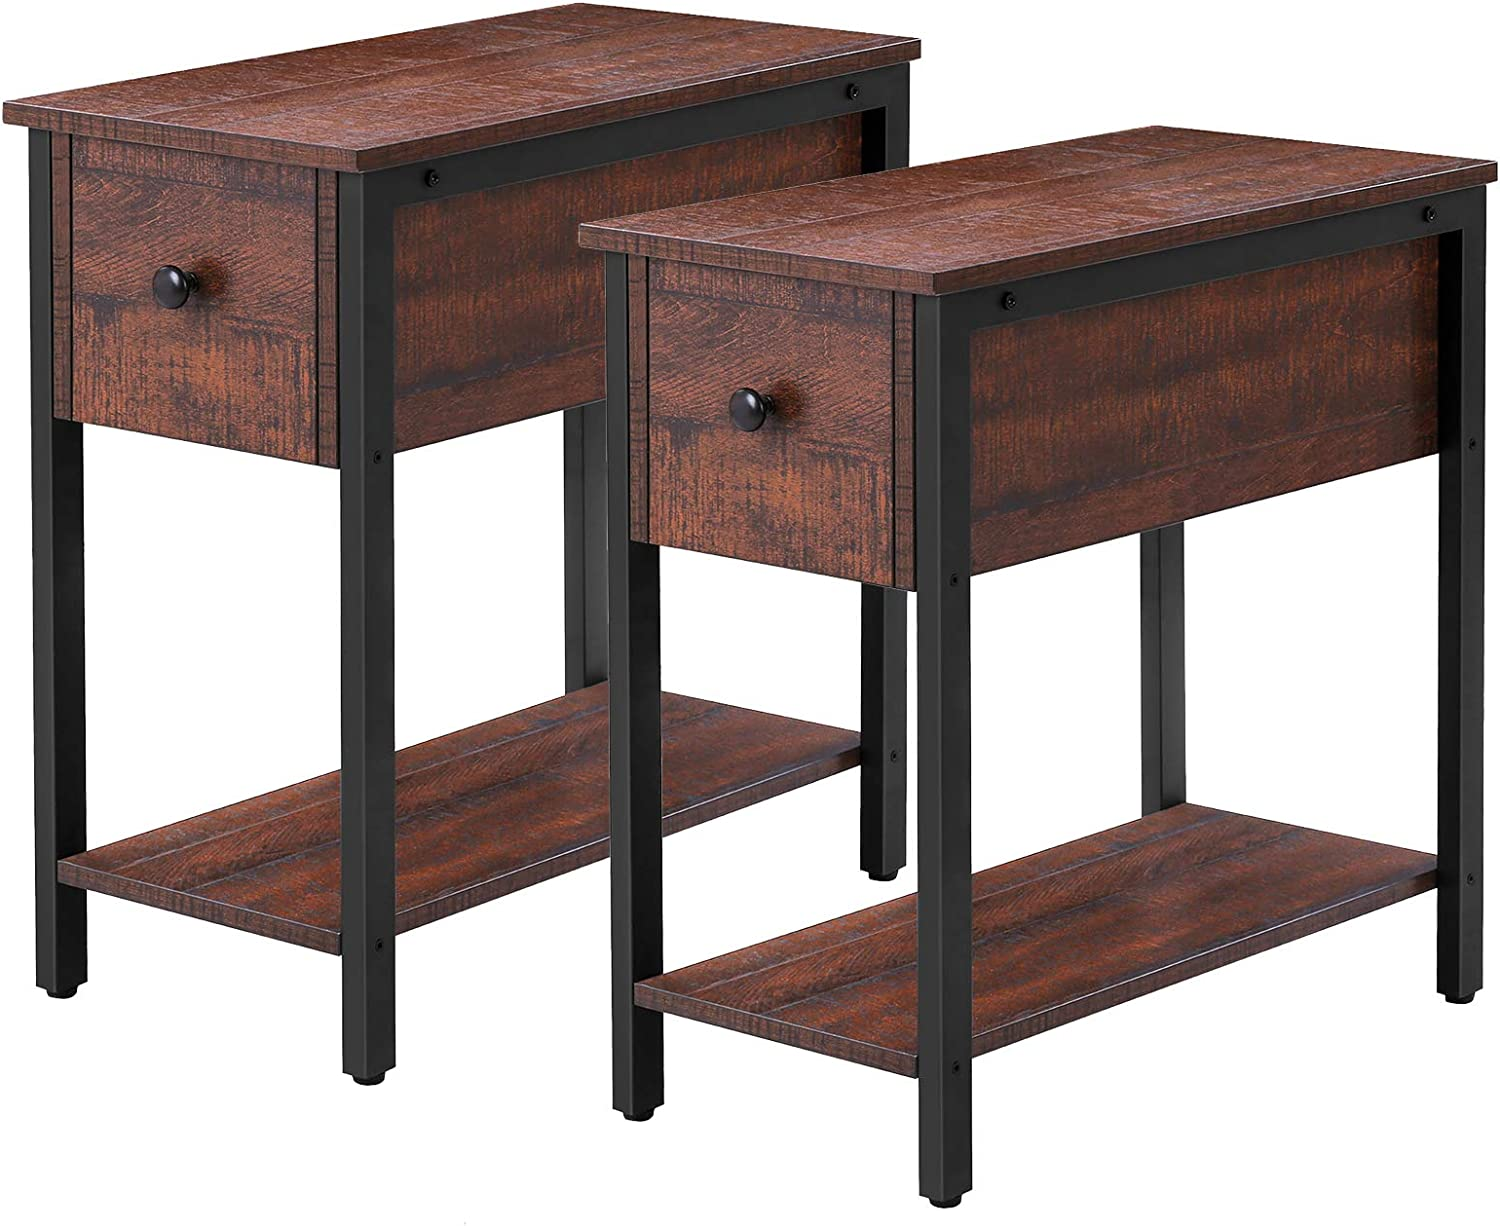 HOOBRO Side Table Set of 2, Thin Nihjtstand with Drawer, Narrow End Table for Small Spaces, Stable and Sturdy Construction, Wood Look Accent Furniture with Metal Frame, Walnut Color BY04BZP201